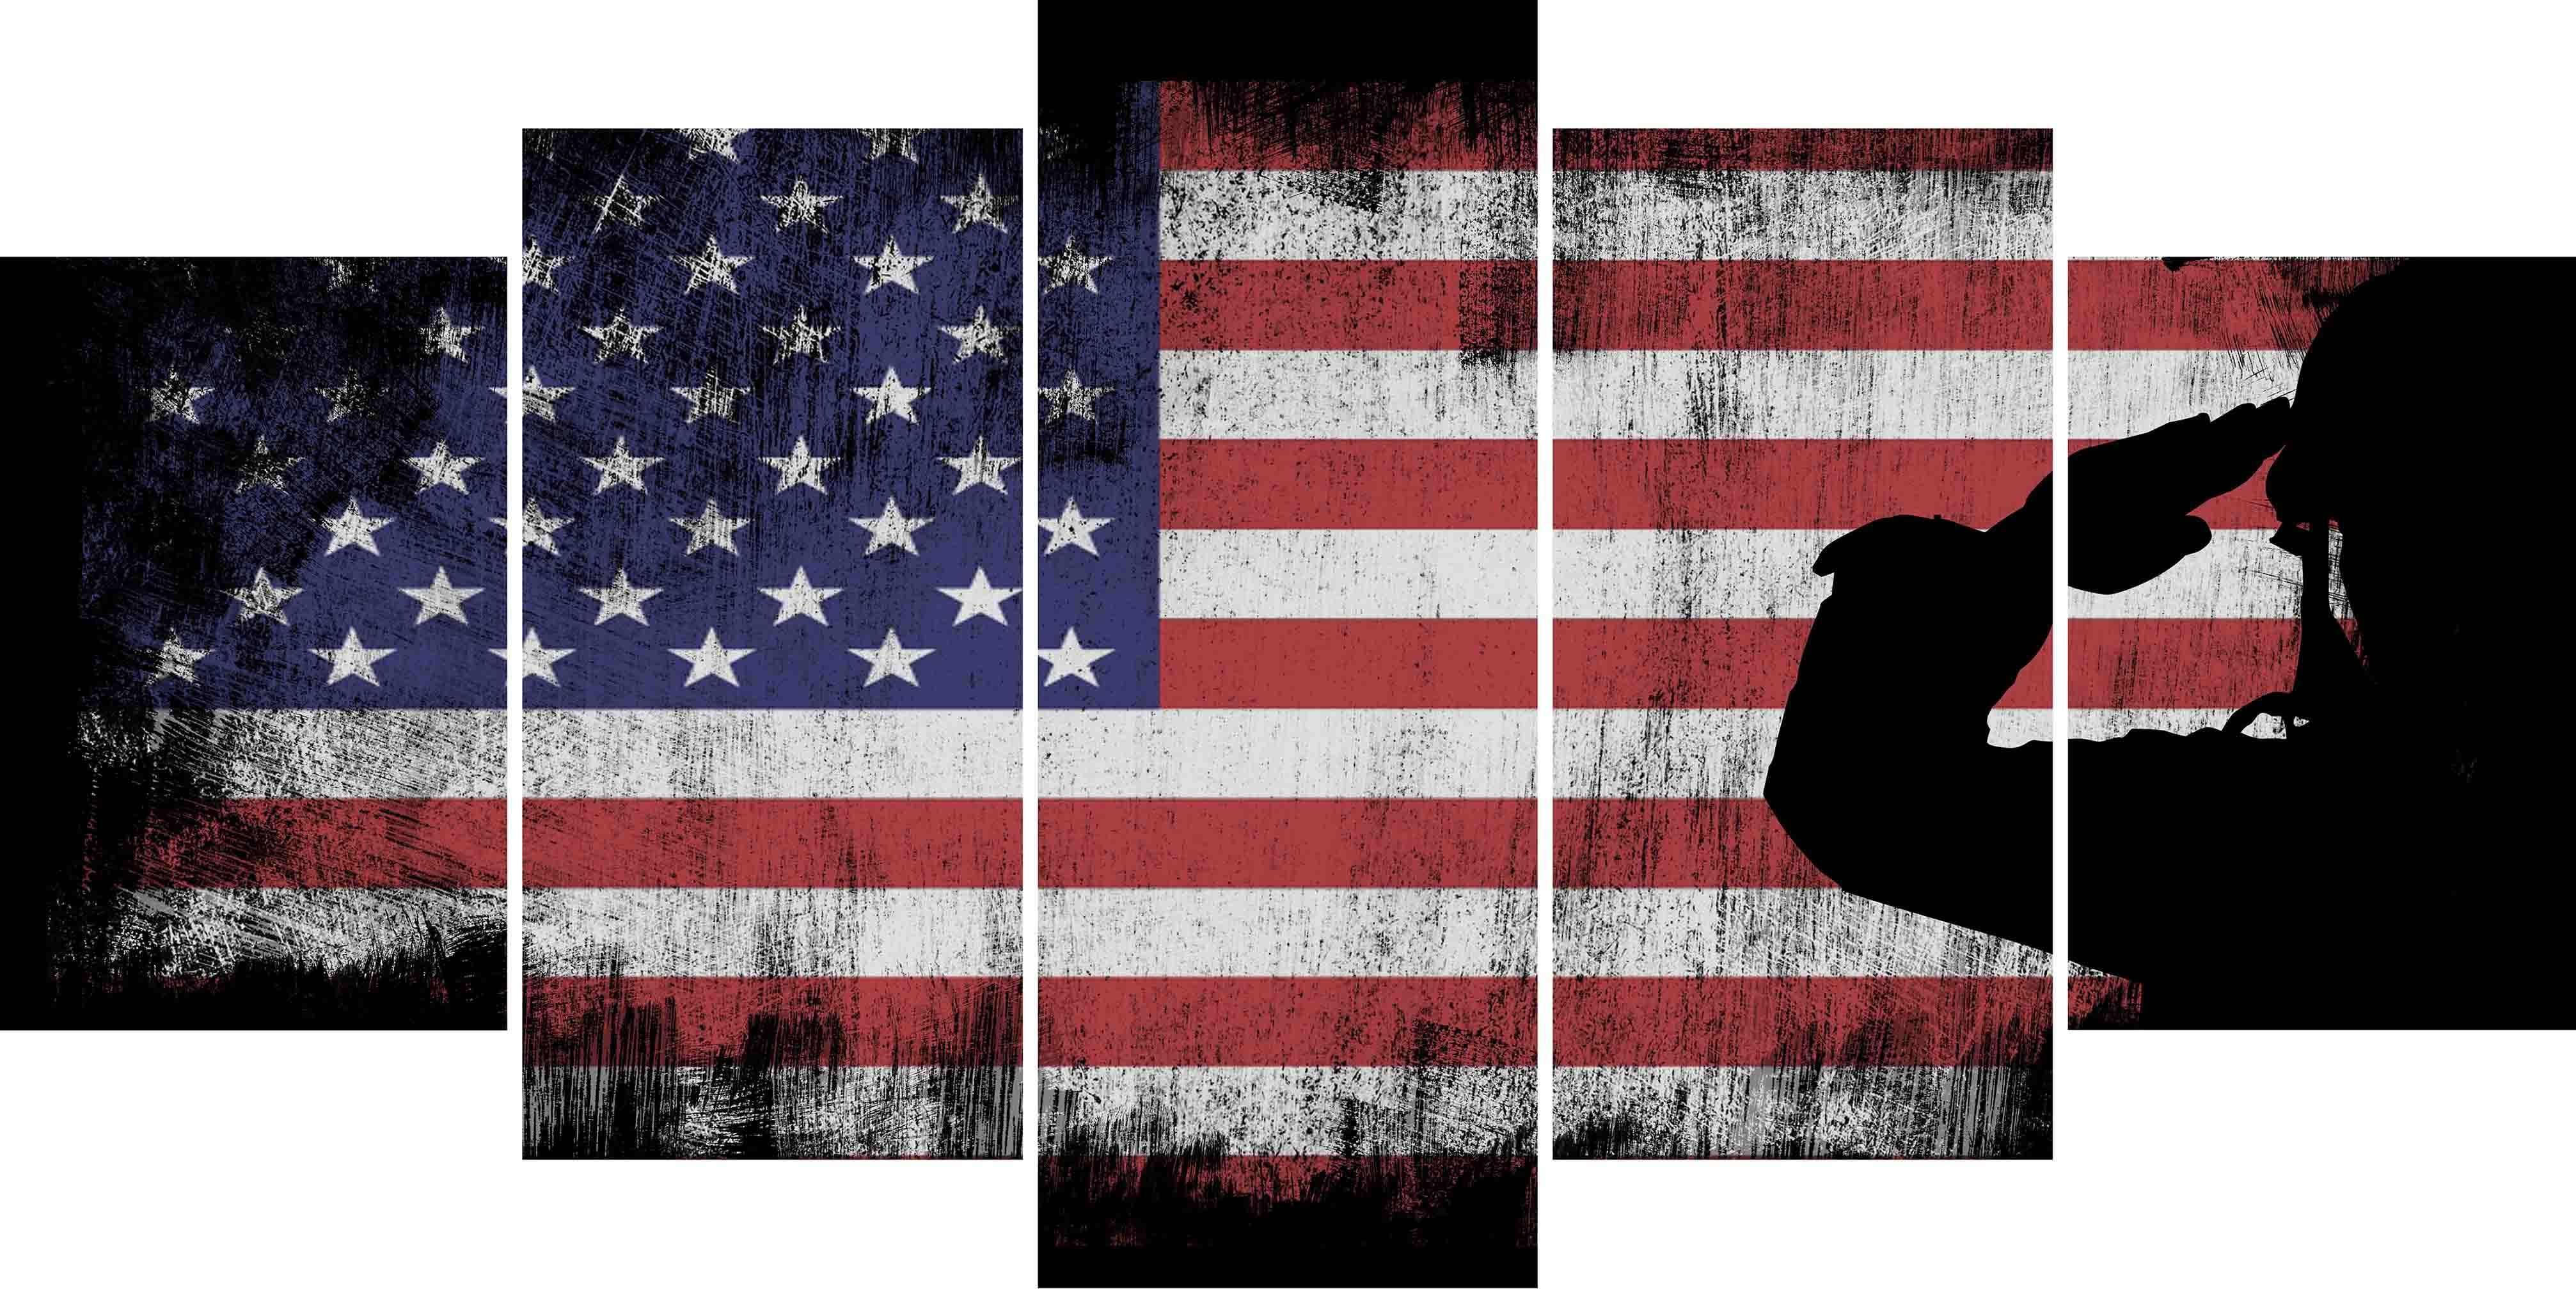 35c2dc97e7d8 US Army Marine Saluting the American Flag Patriotic Military Wall Art  Canvas Painting Decor